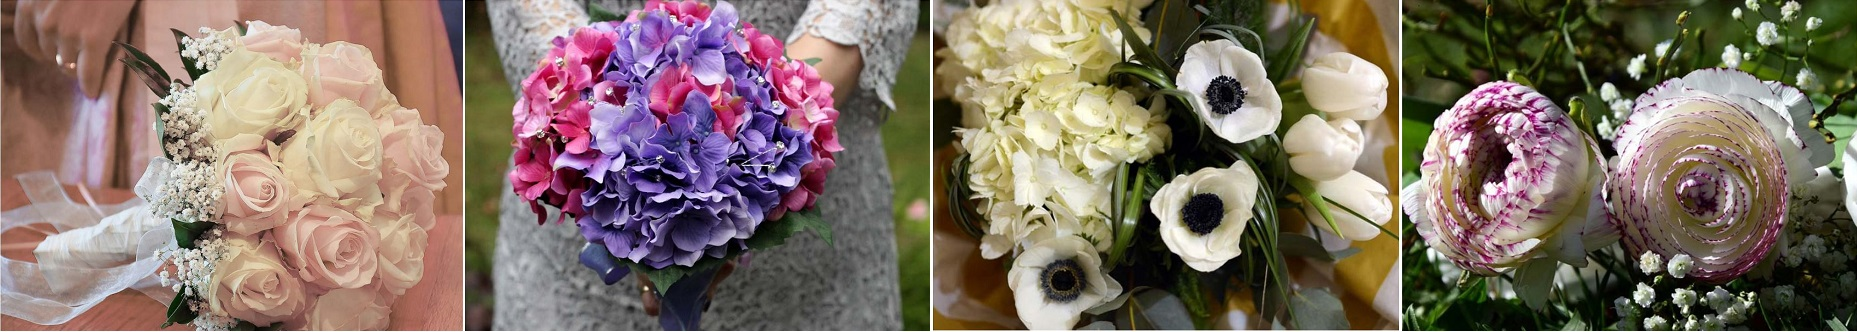 Chicago wedding bouquet 2020